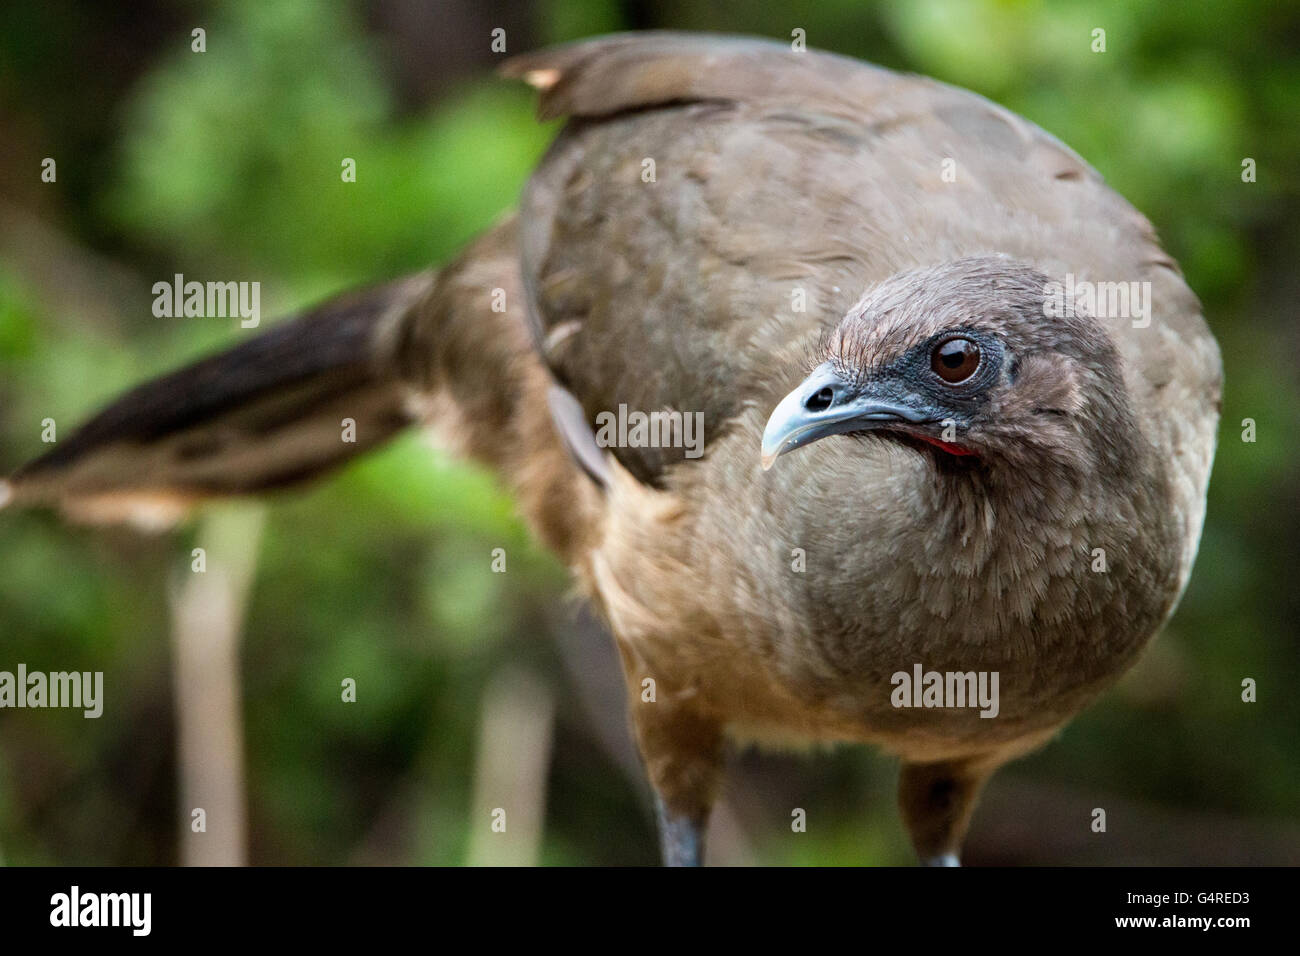 Close-up of Plain Chachalaca (Ortalis vetula) at Camp Lula Sams in Brownsville, Texas - Stock Image